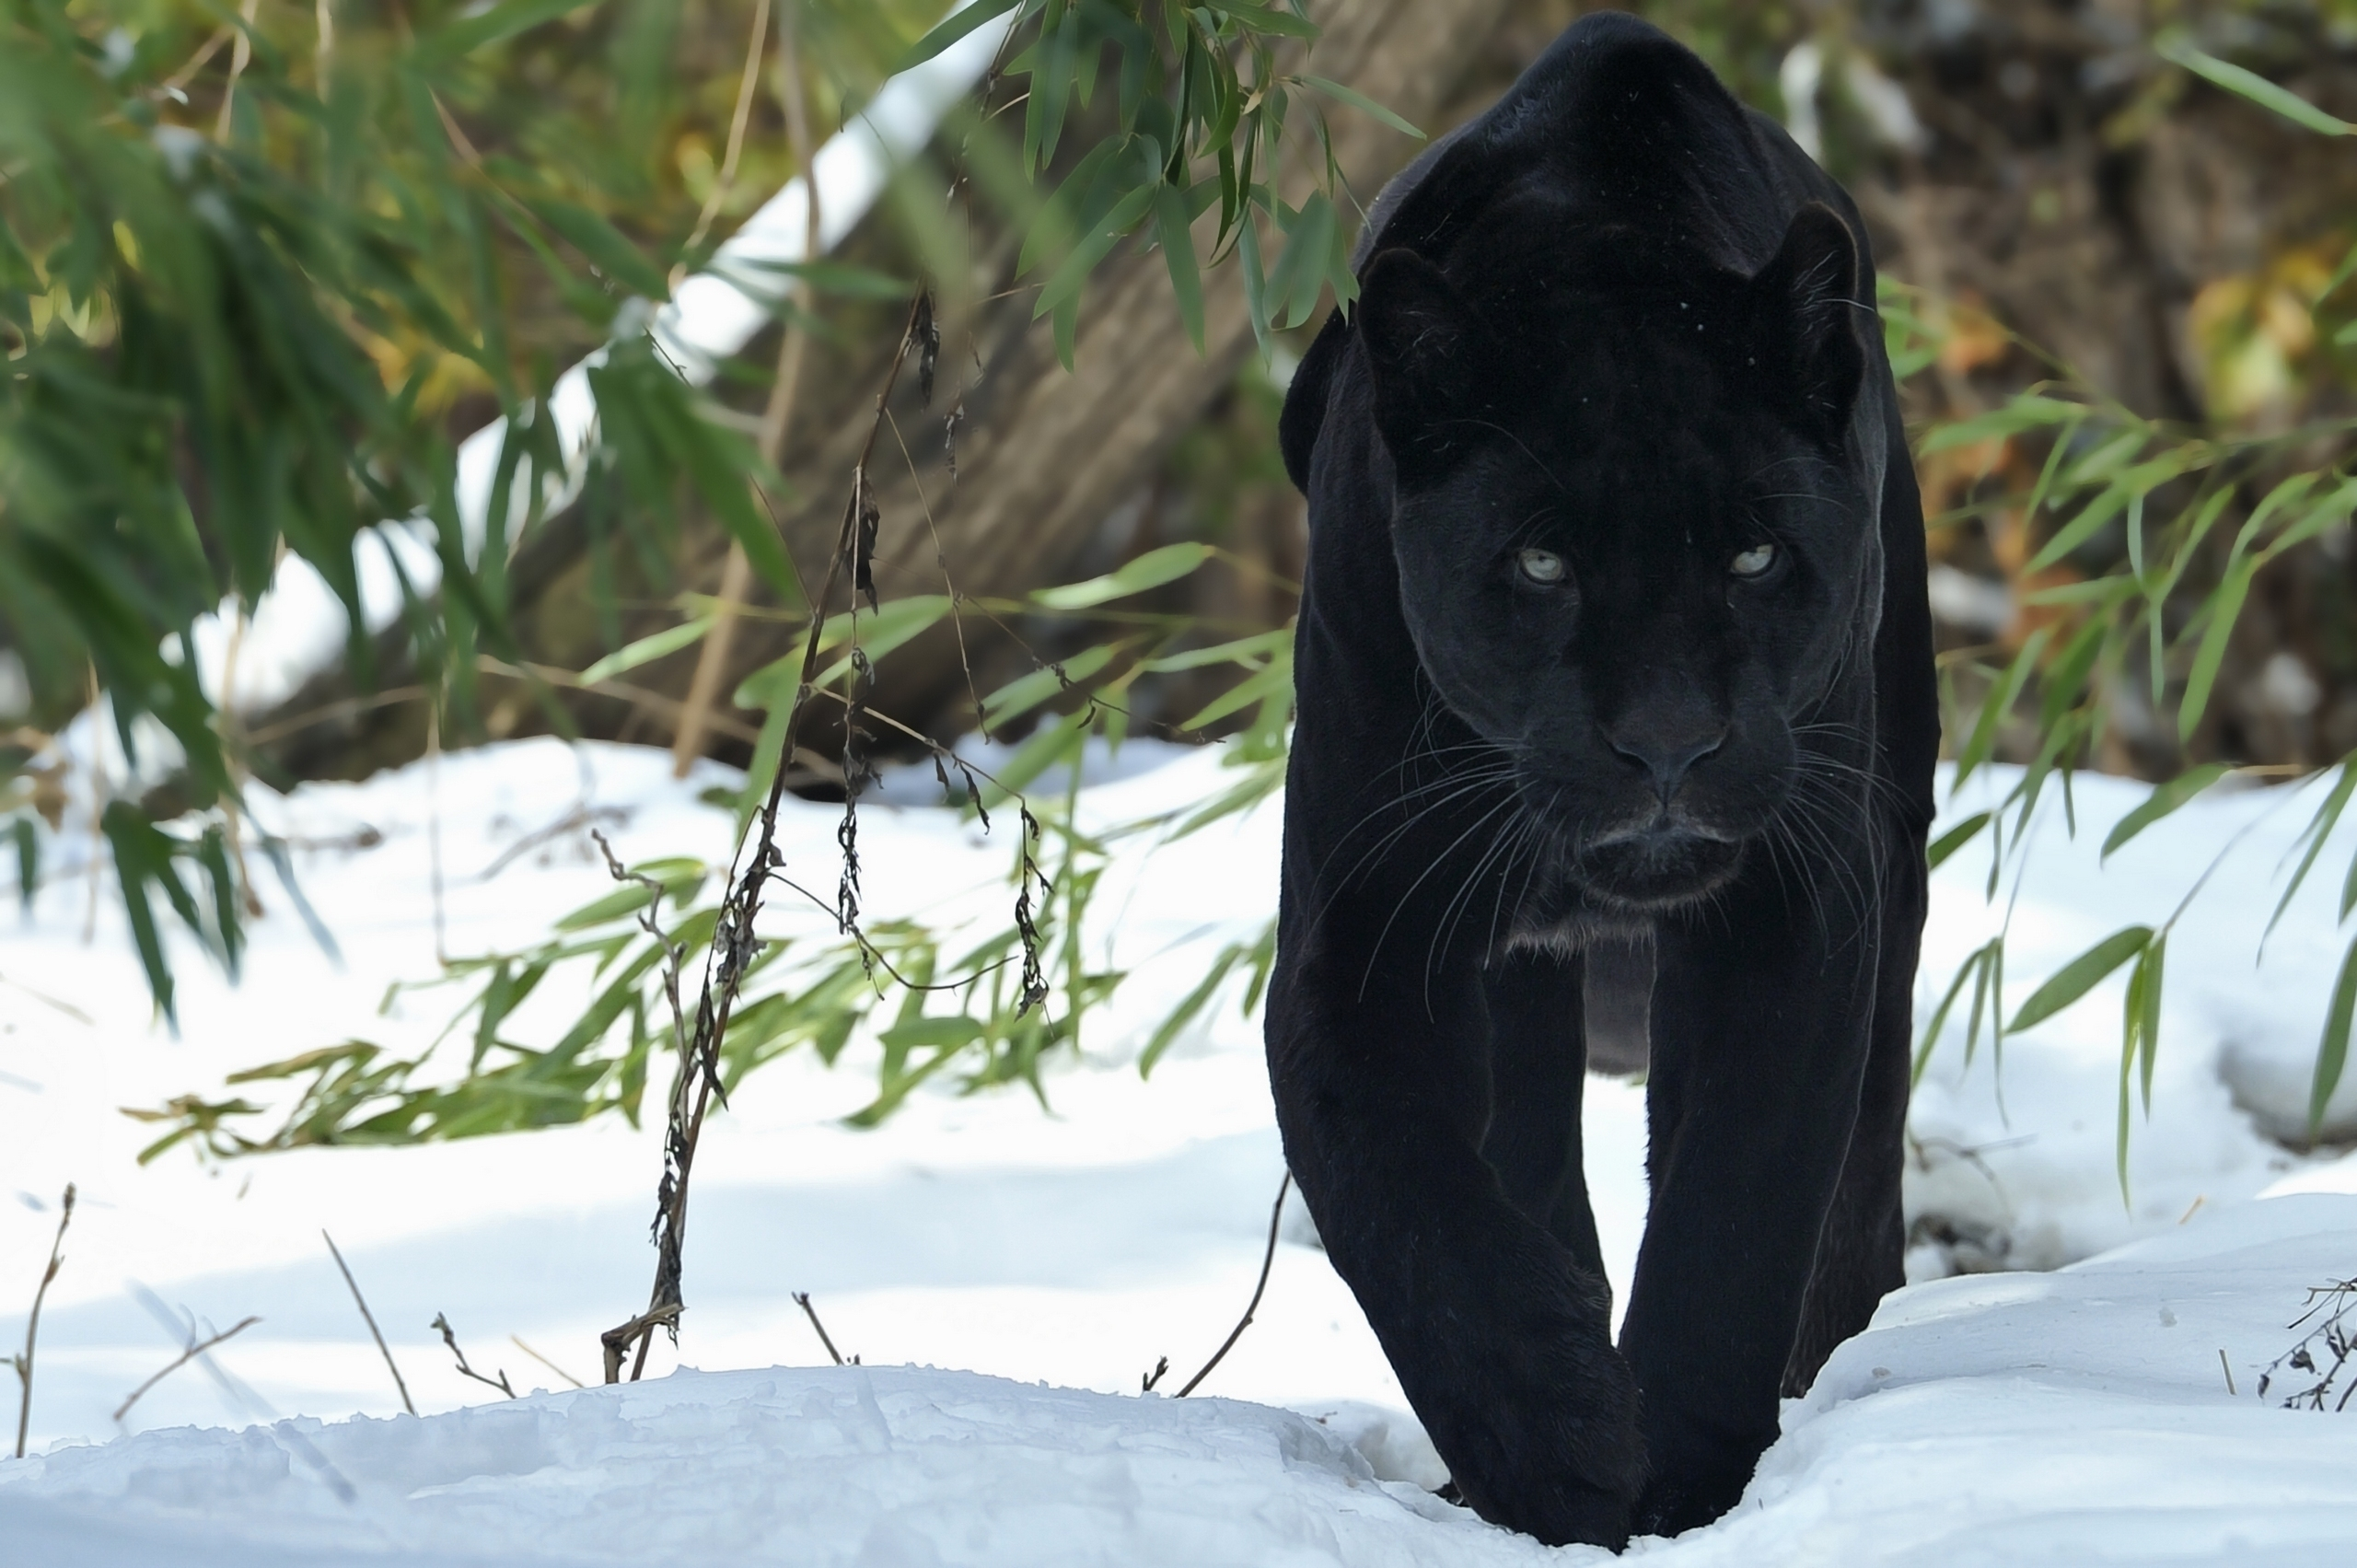 130381 download wallpaper Winter, Animals, Snow, Predator, Big Cat, Stroll, Panther screensavers and pictures for free